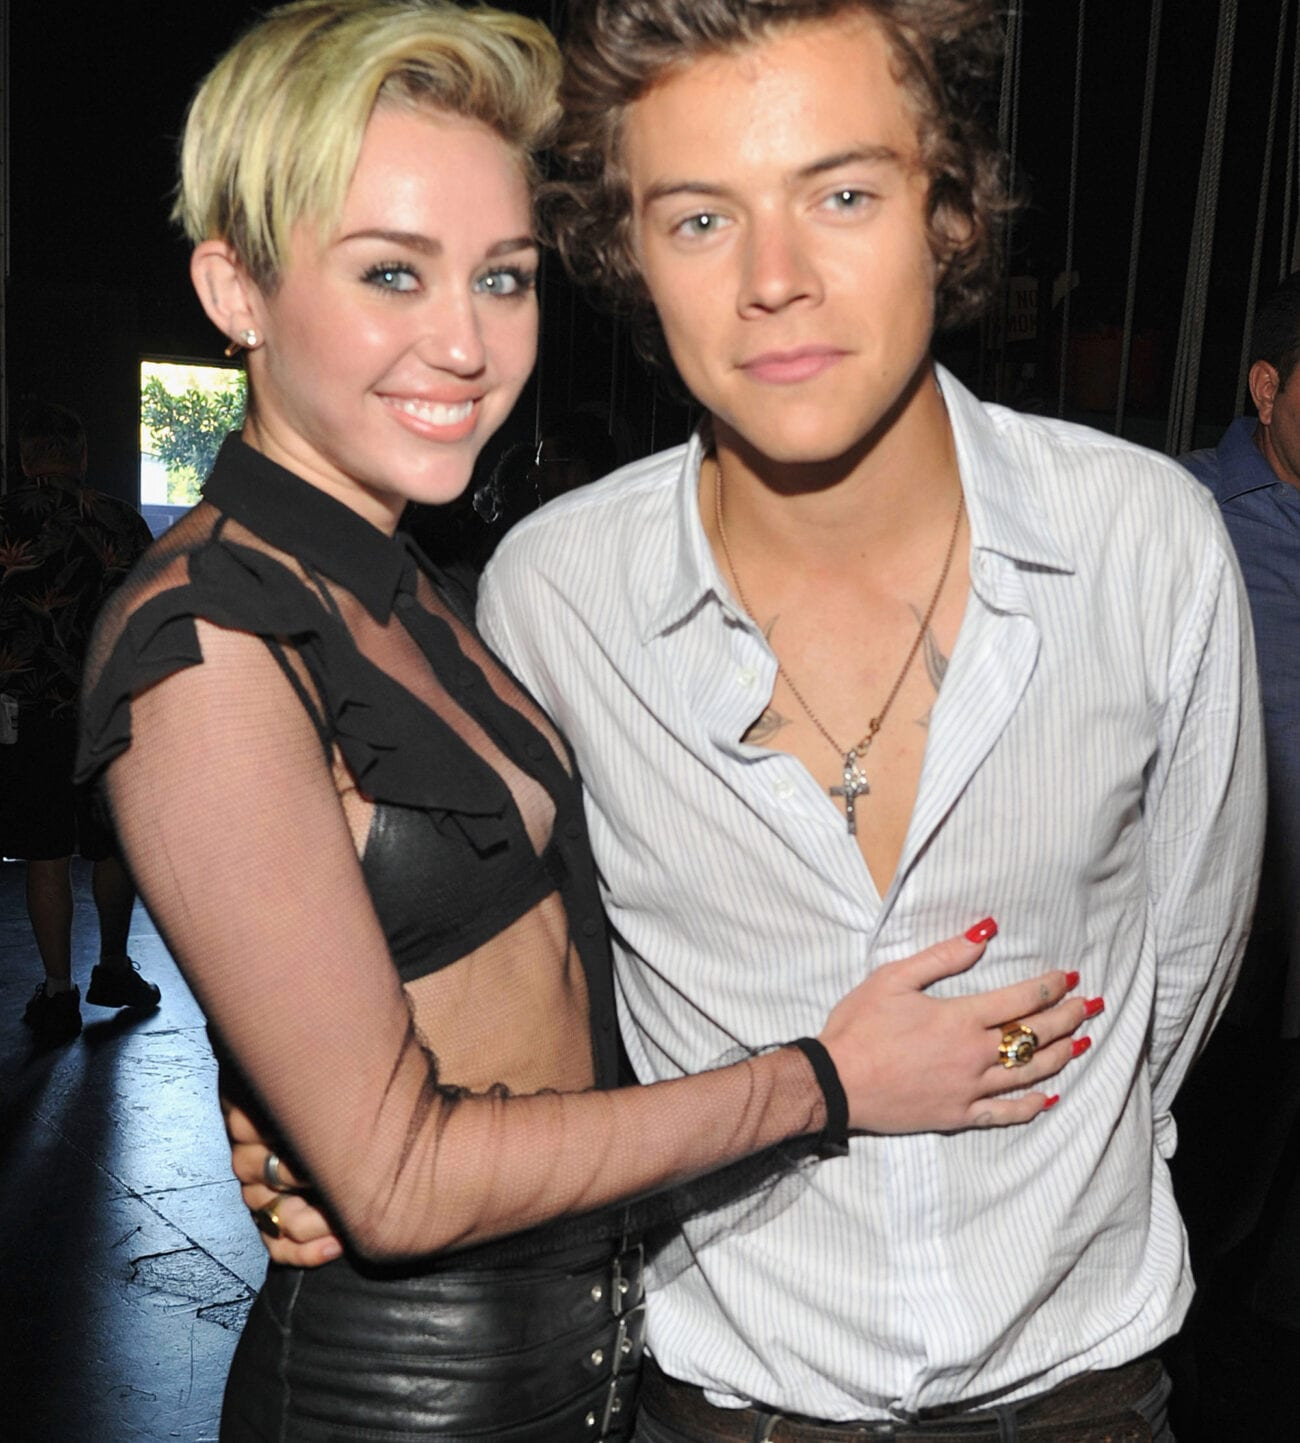 Are we about to witness the biggest celebrity couple? Find out why everyone thinks Miley Cyrus is falling for Harry Styles.